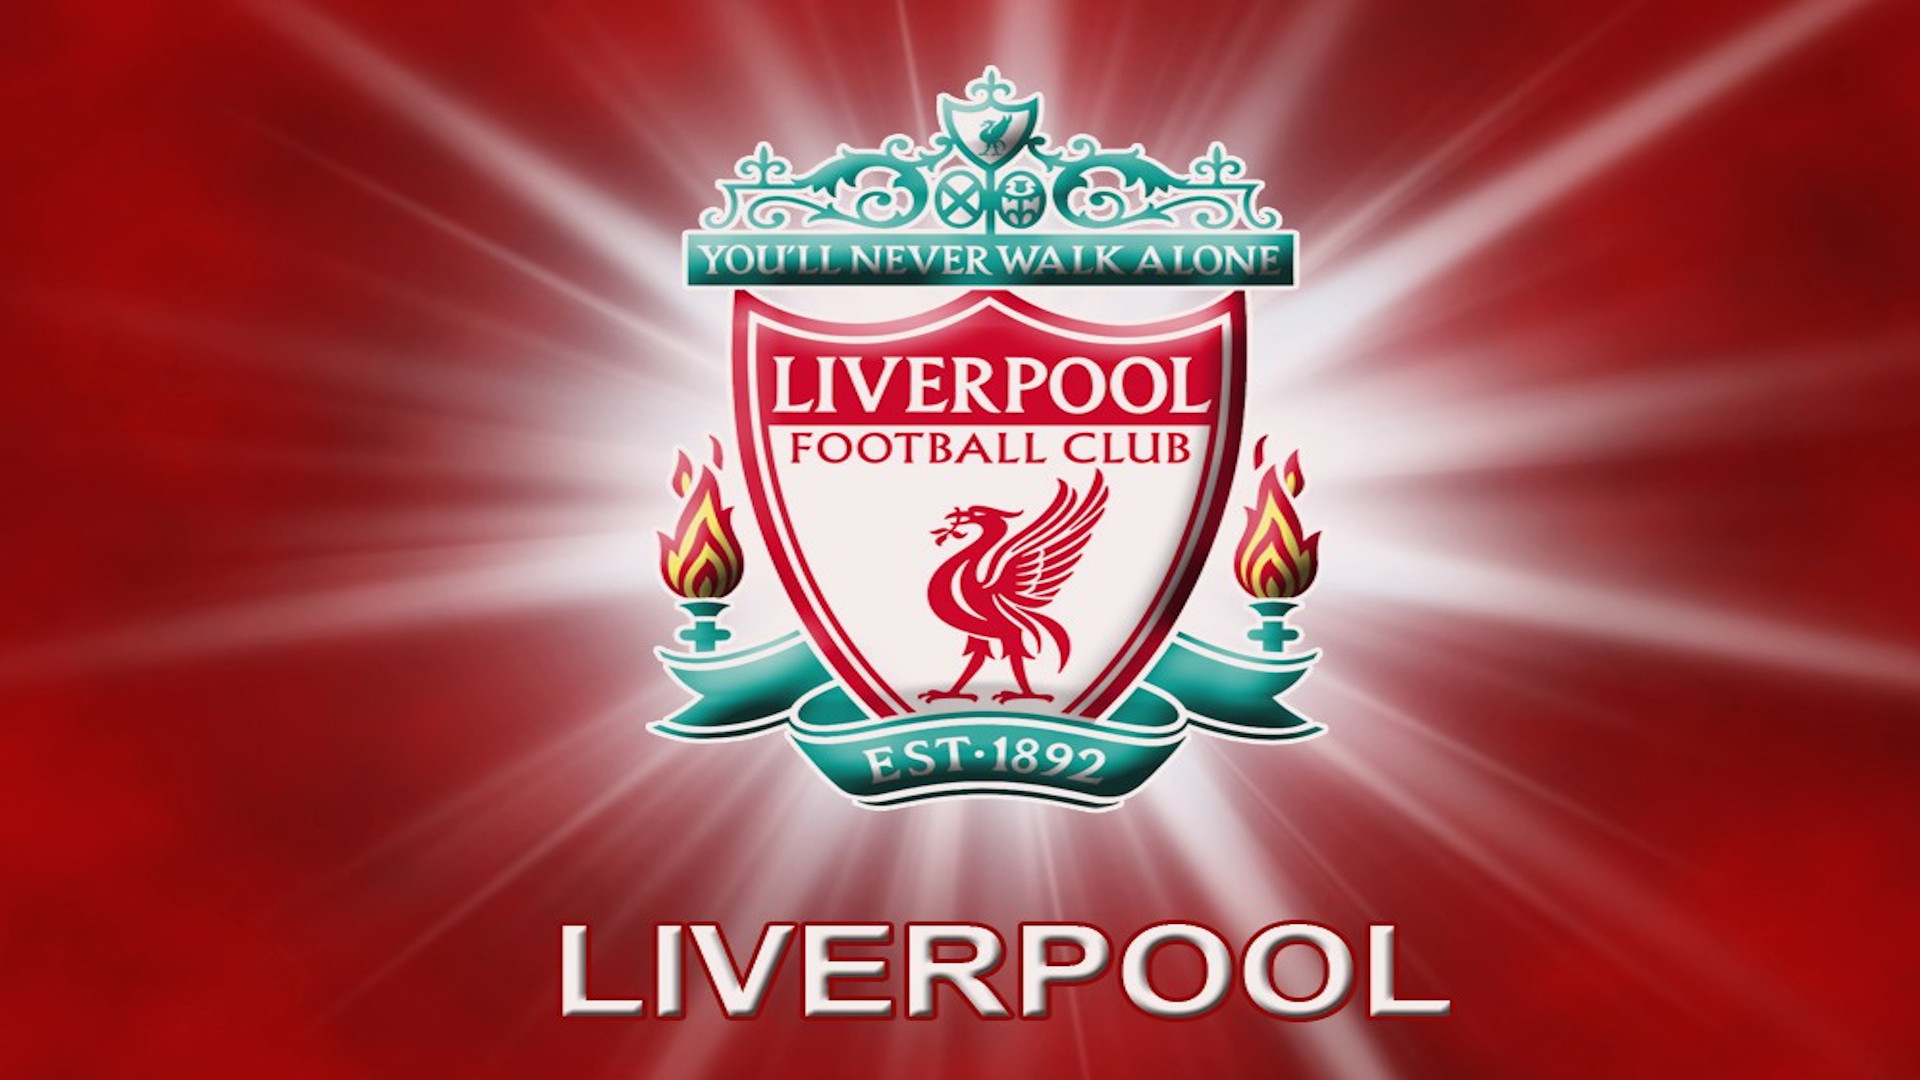 Liverpool FC History And Club Facts - SPORTBLIS